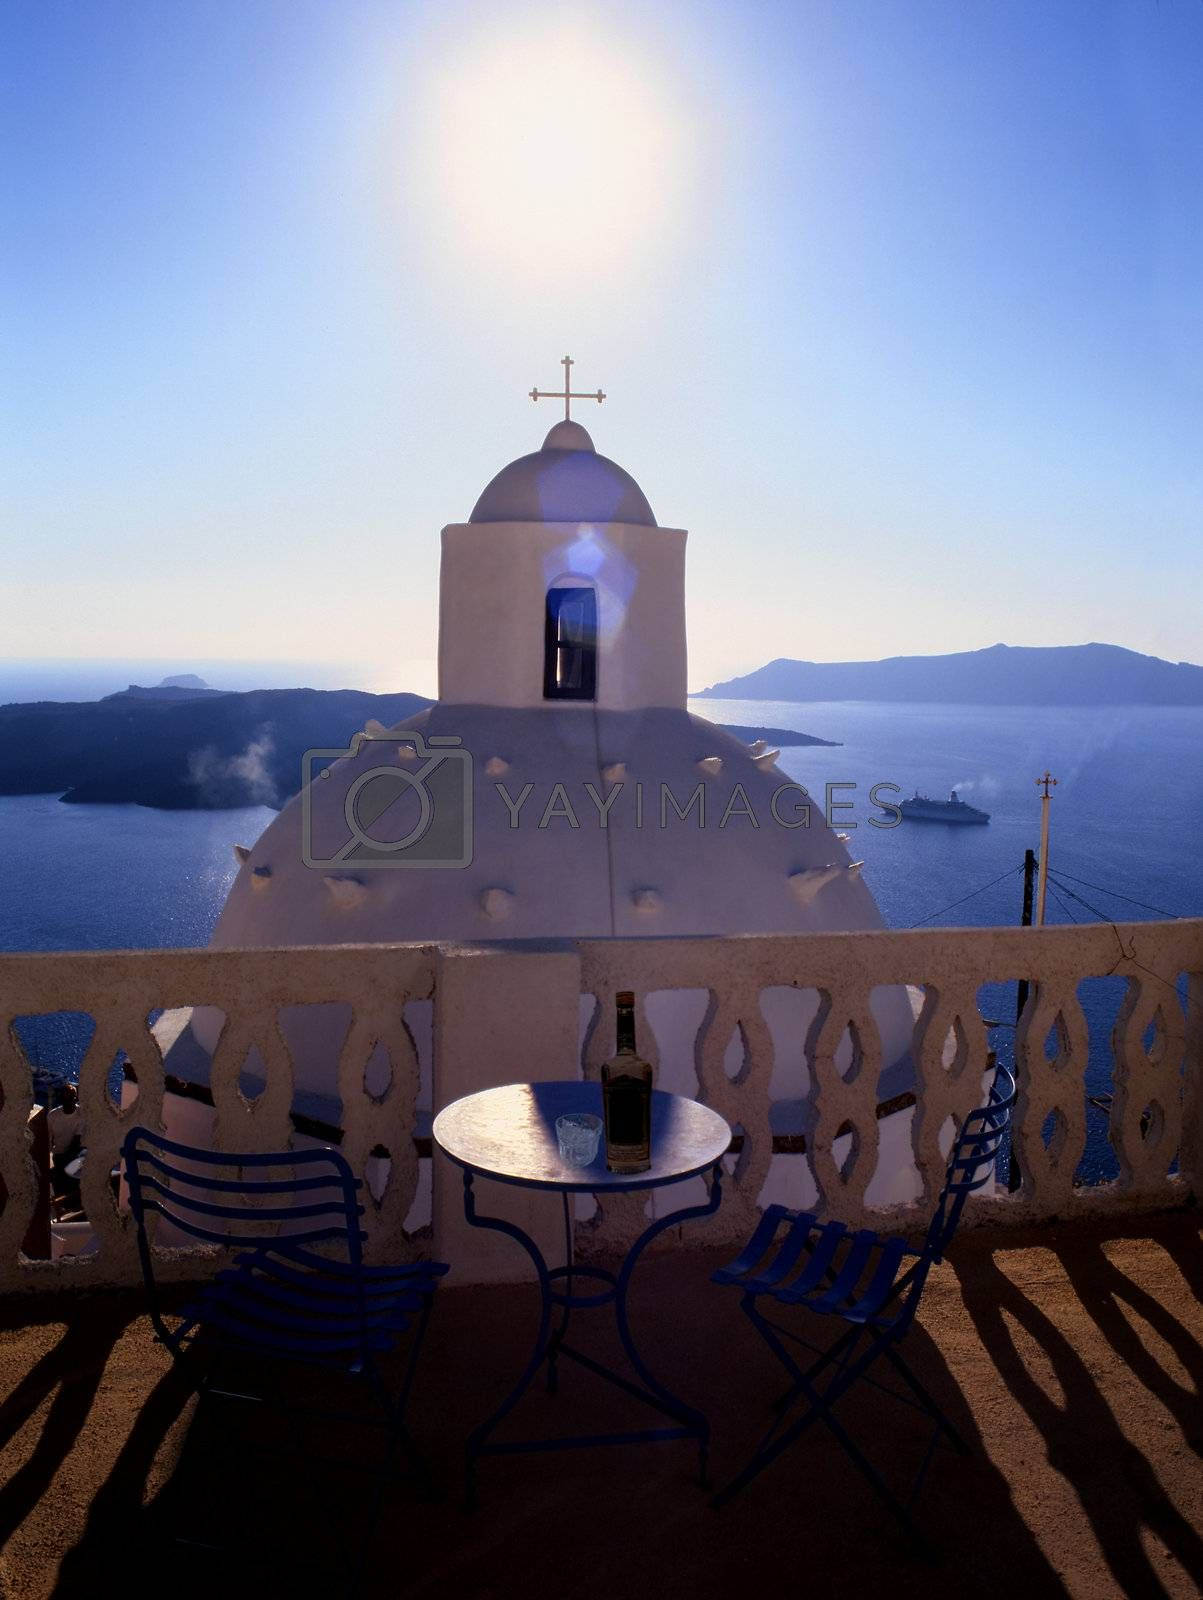 A balcony overlooking a small church on the Greek island of Santorini,  with the sun setting directly in front blue sky and mountains in the background.